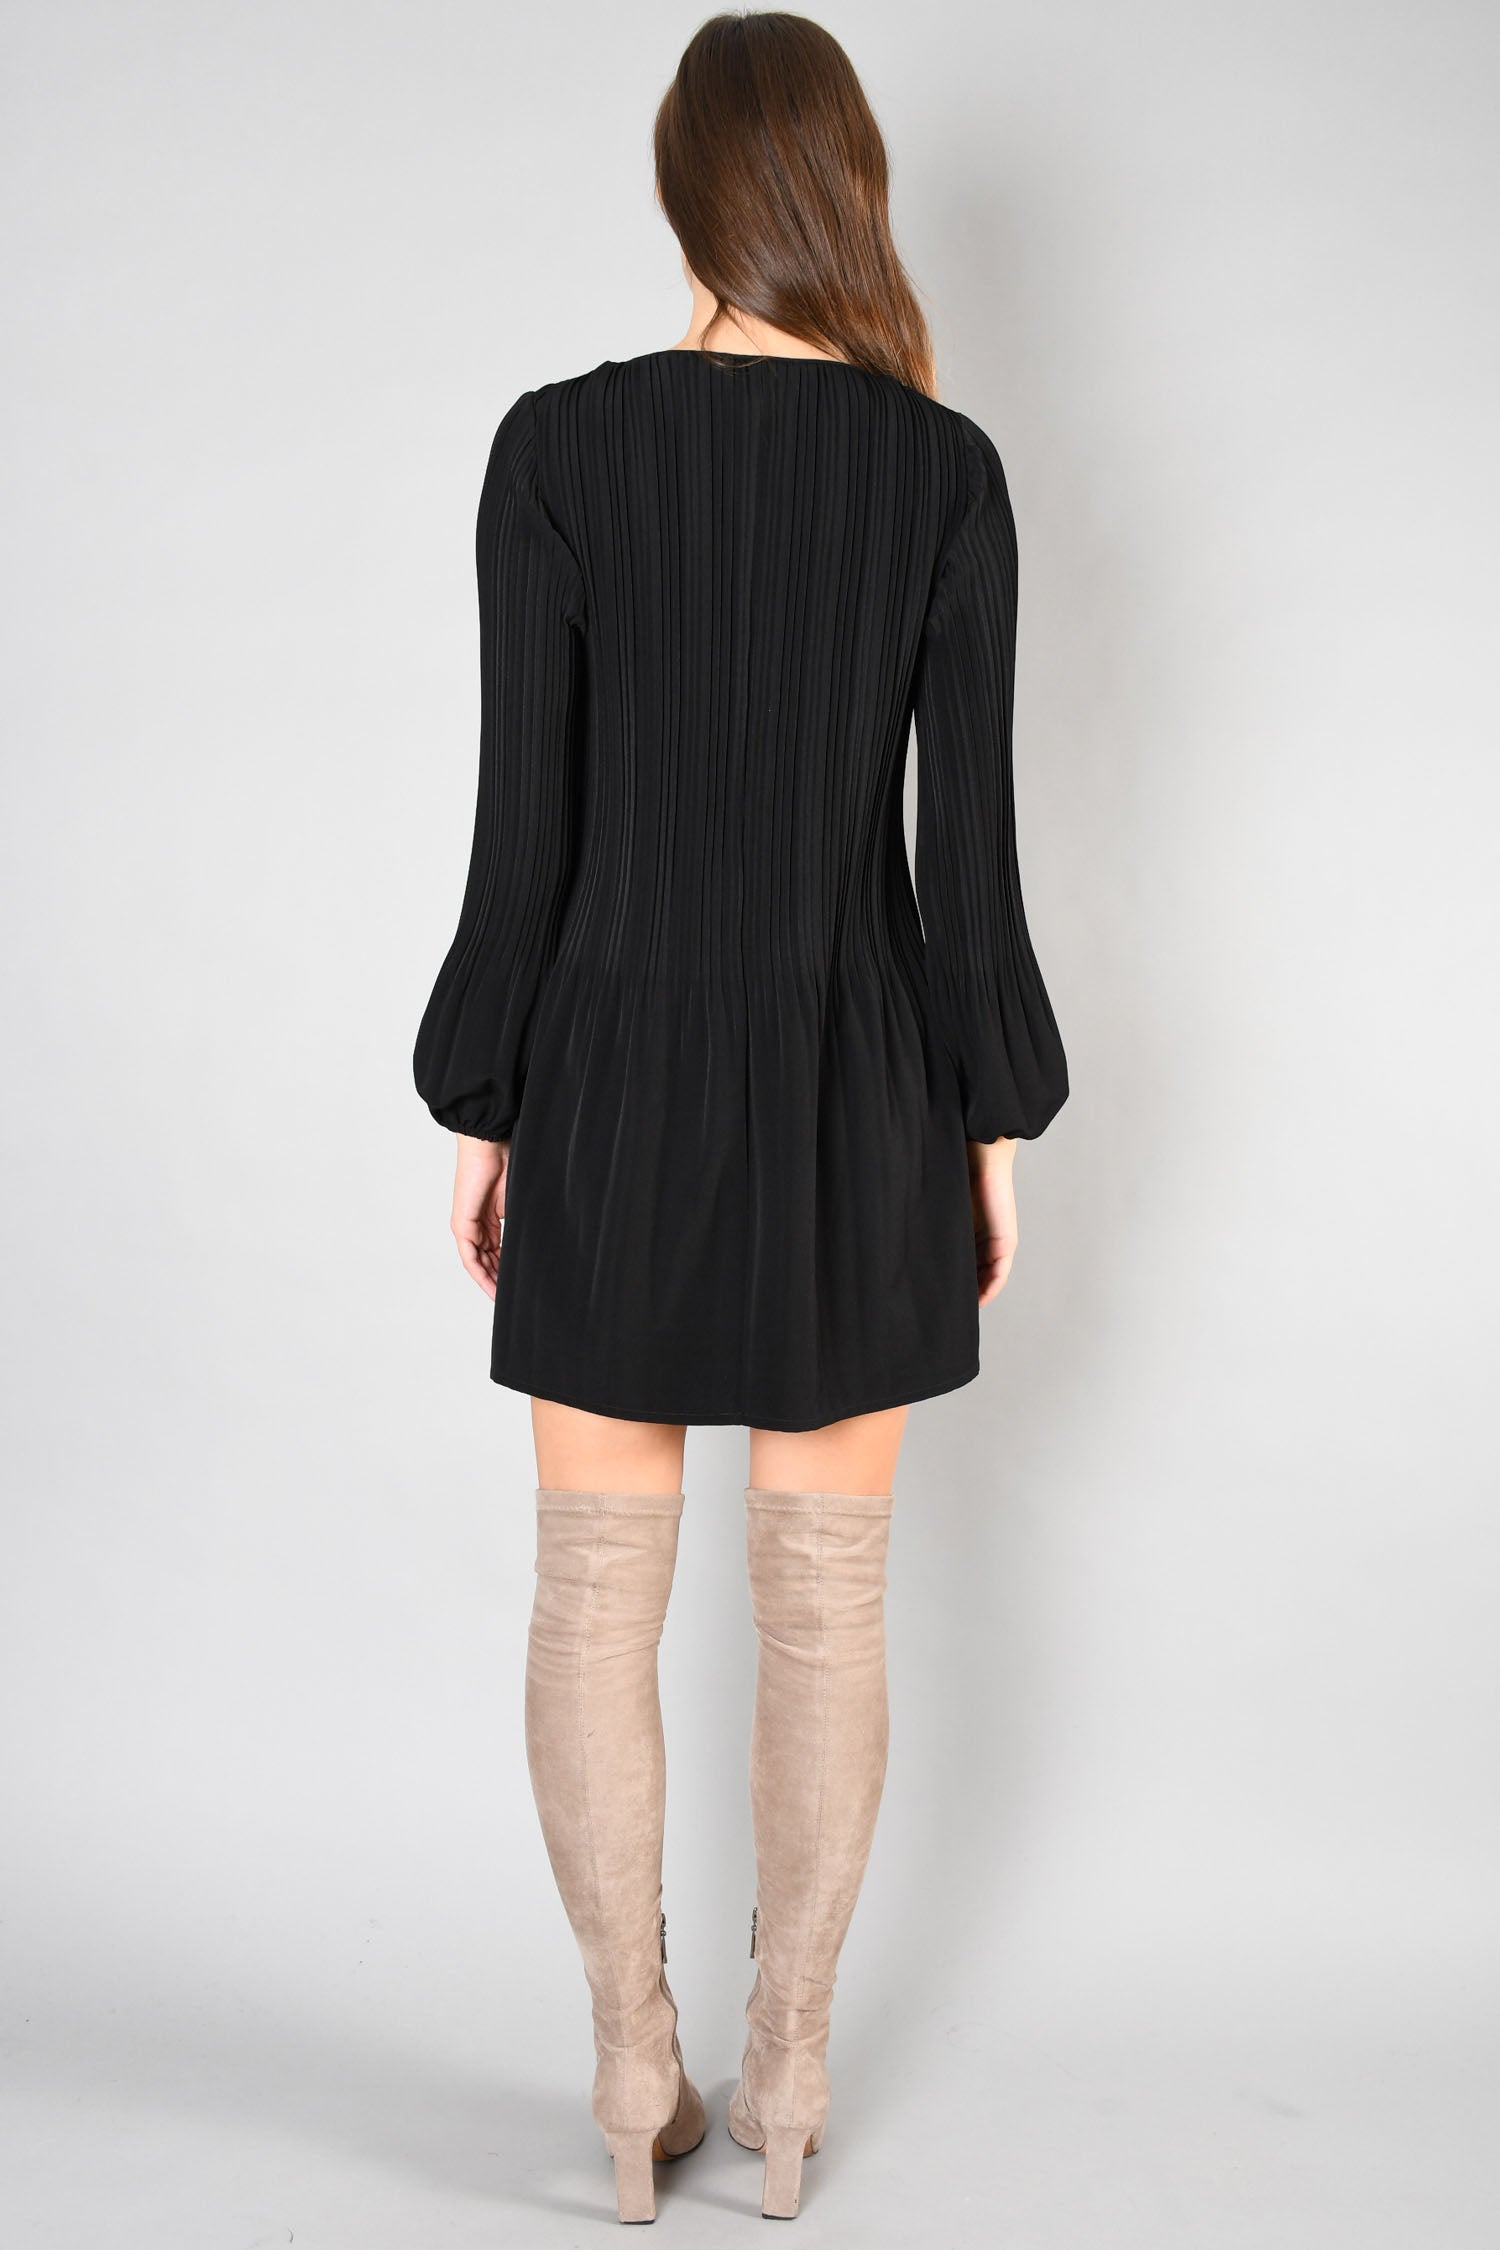 Maje Black Pleated L/S Dress Size 1